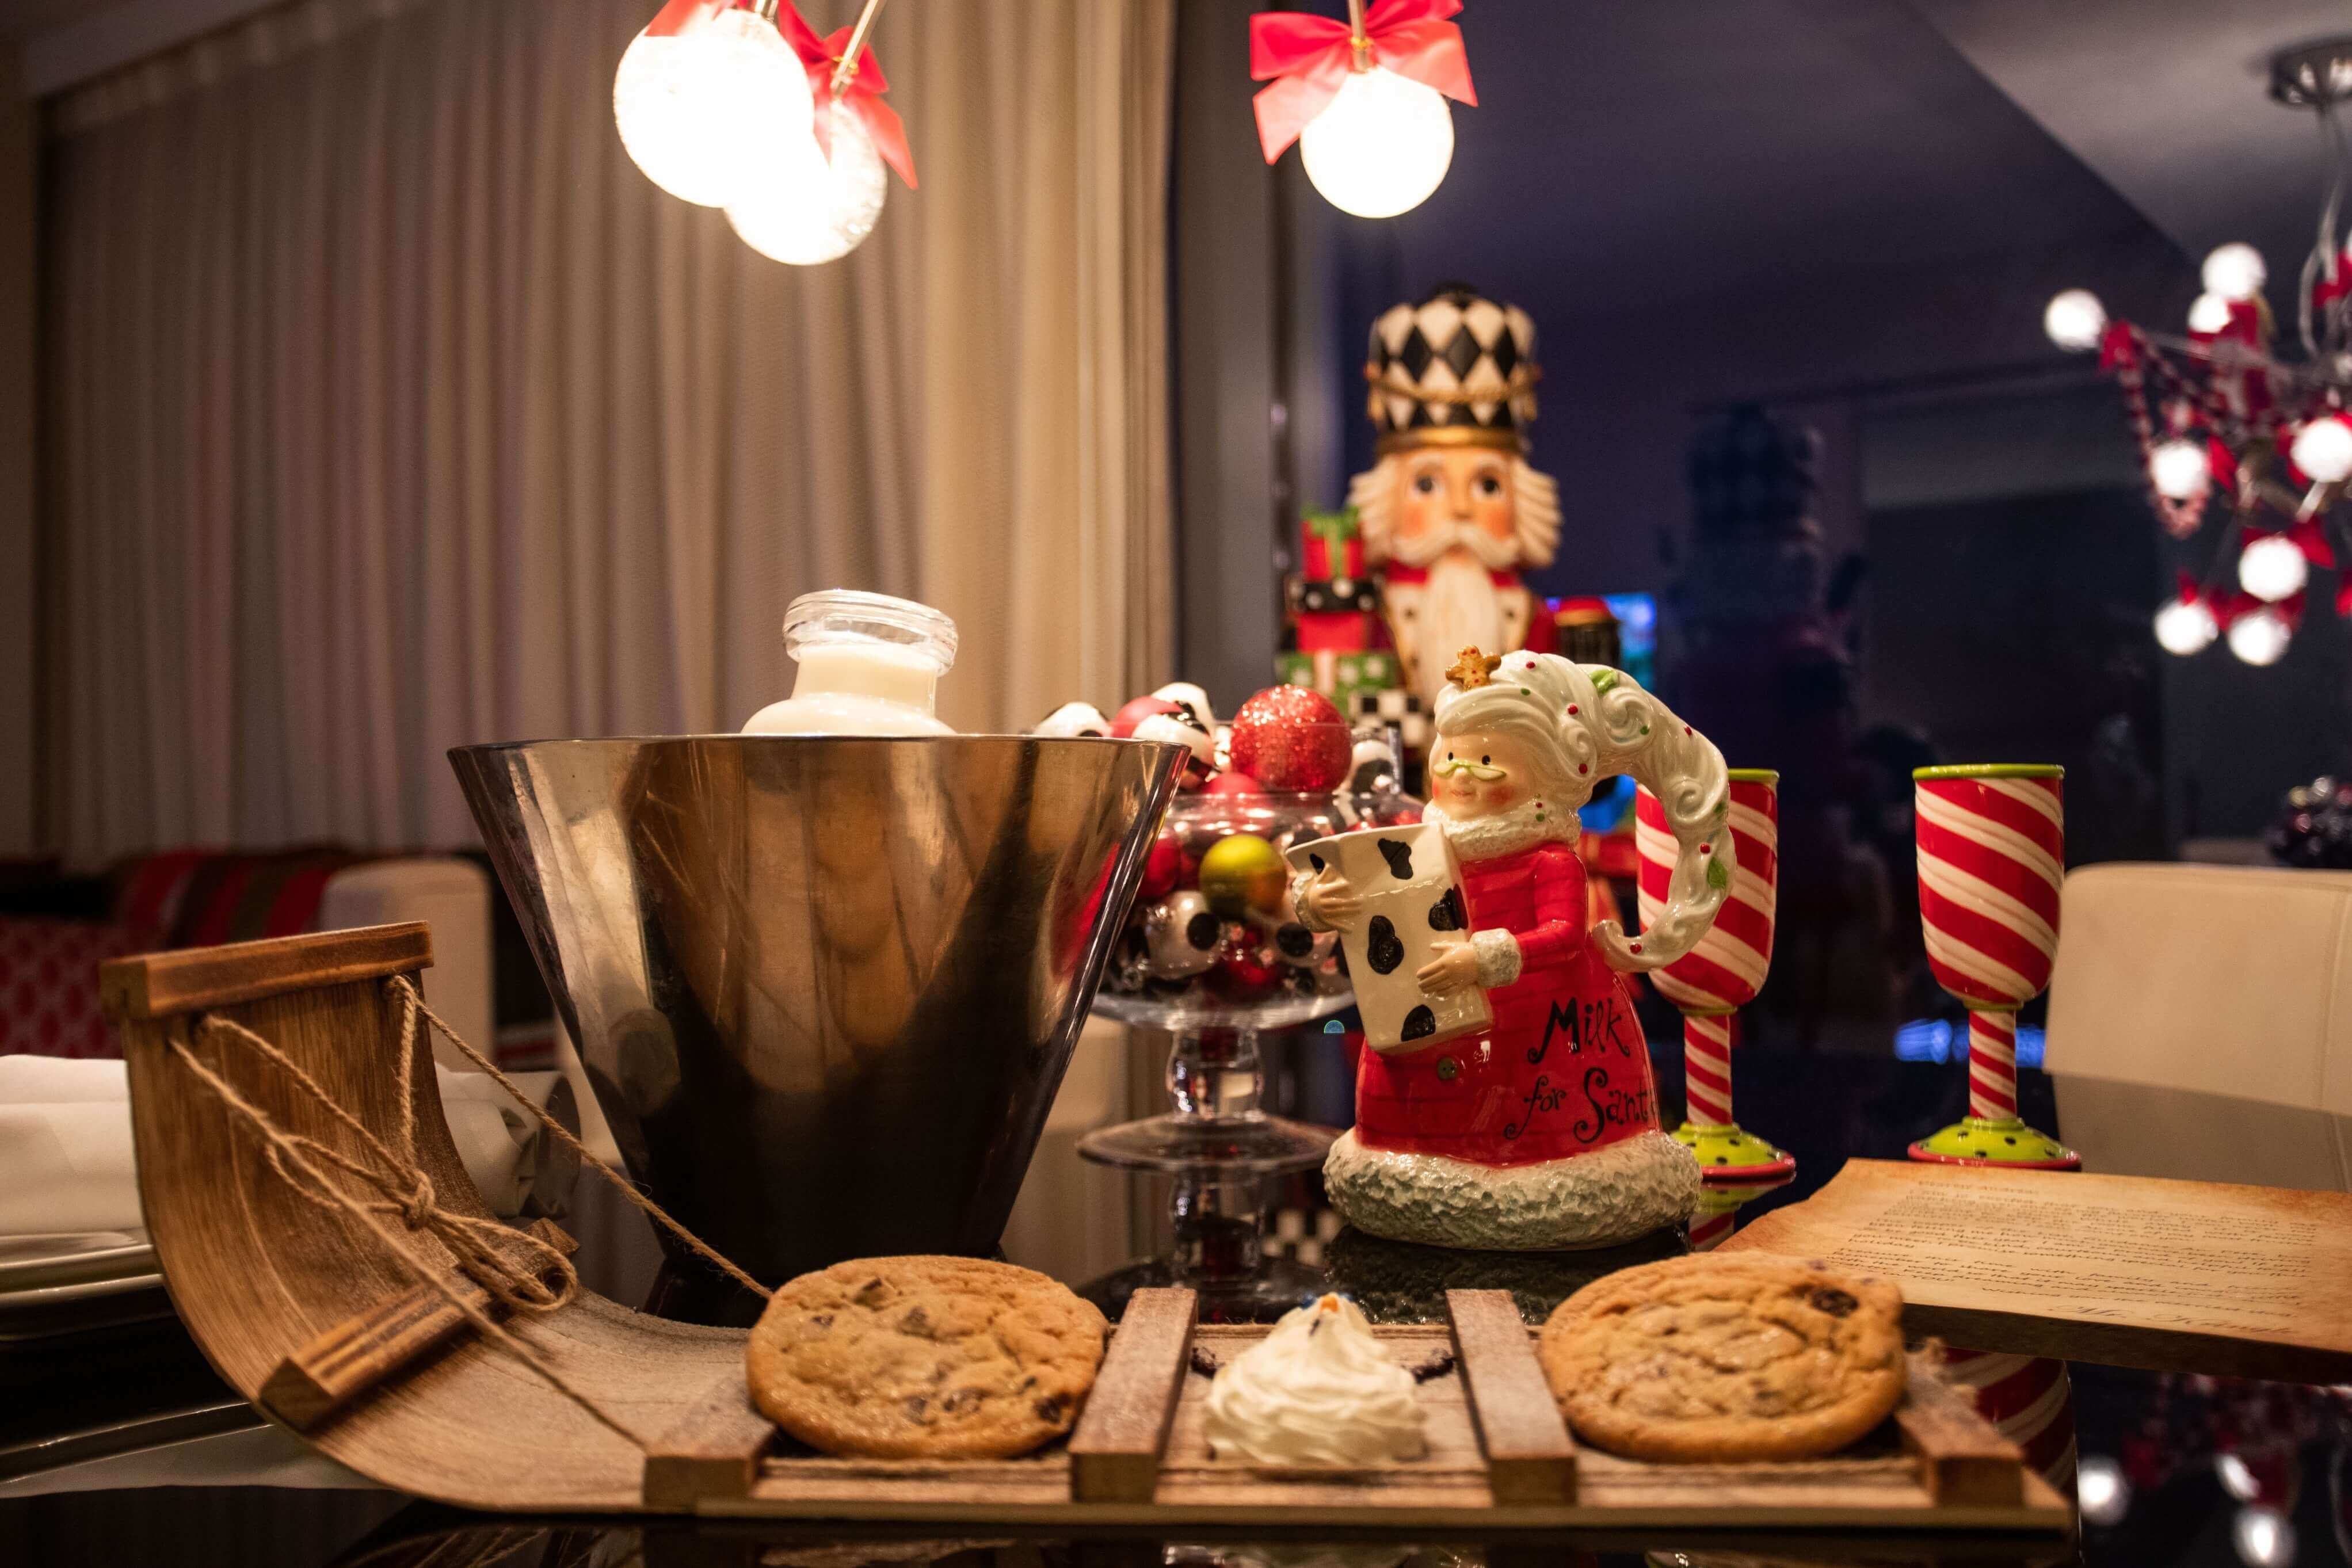 A delivery of treats come to the Mr. Kringle in Cleveland, Ohio.